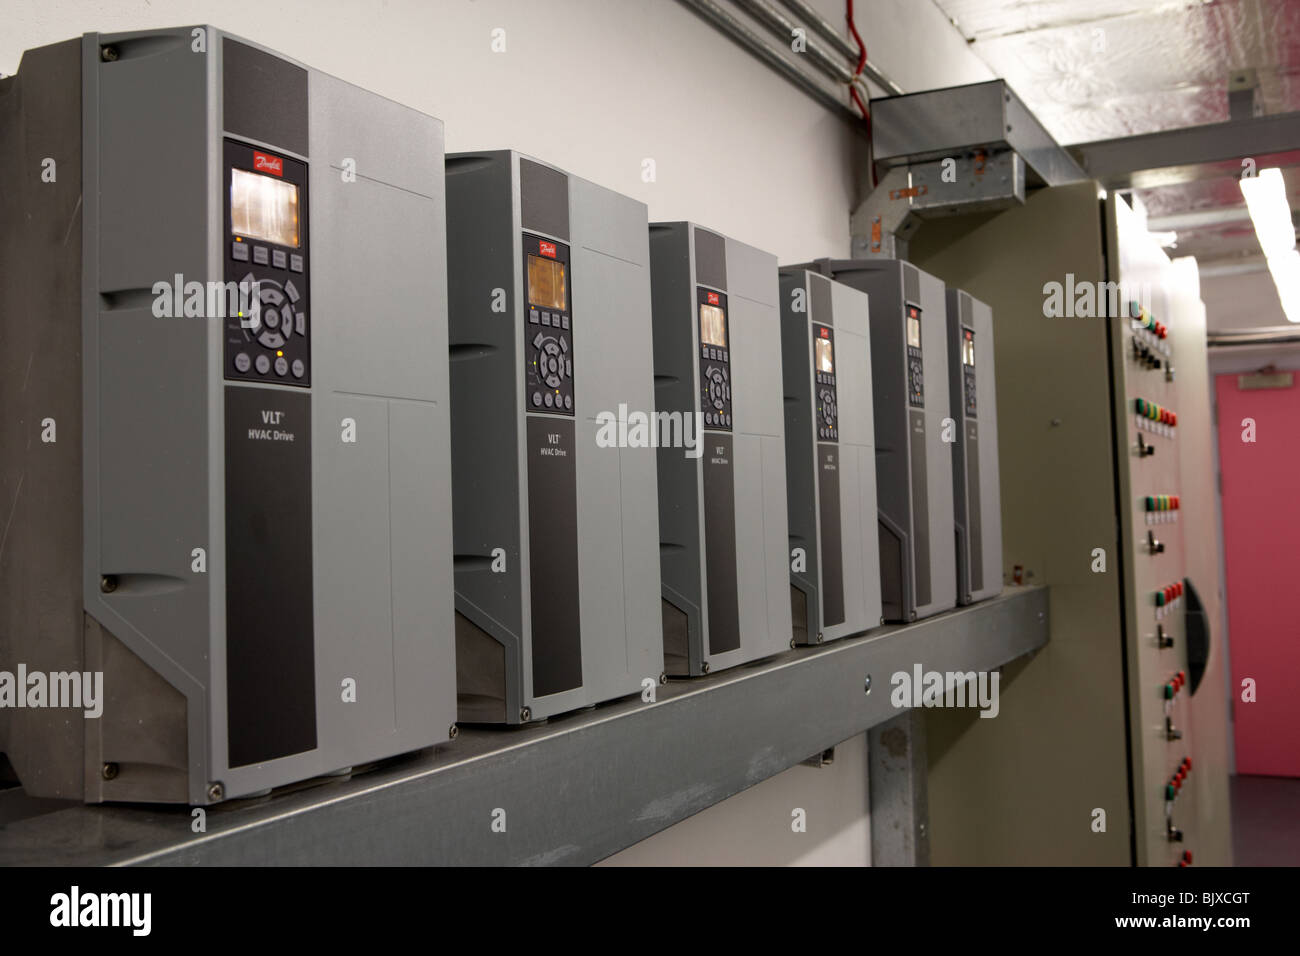 control panels for new installation hvac heating ventilation and air conditioning system in a modern office building - Stock Image